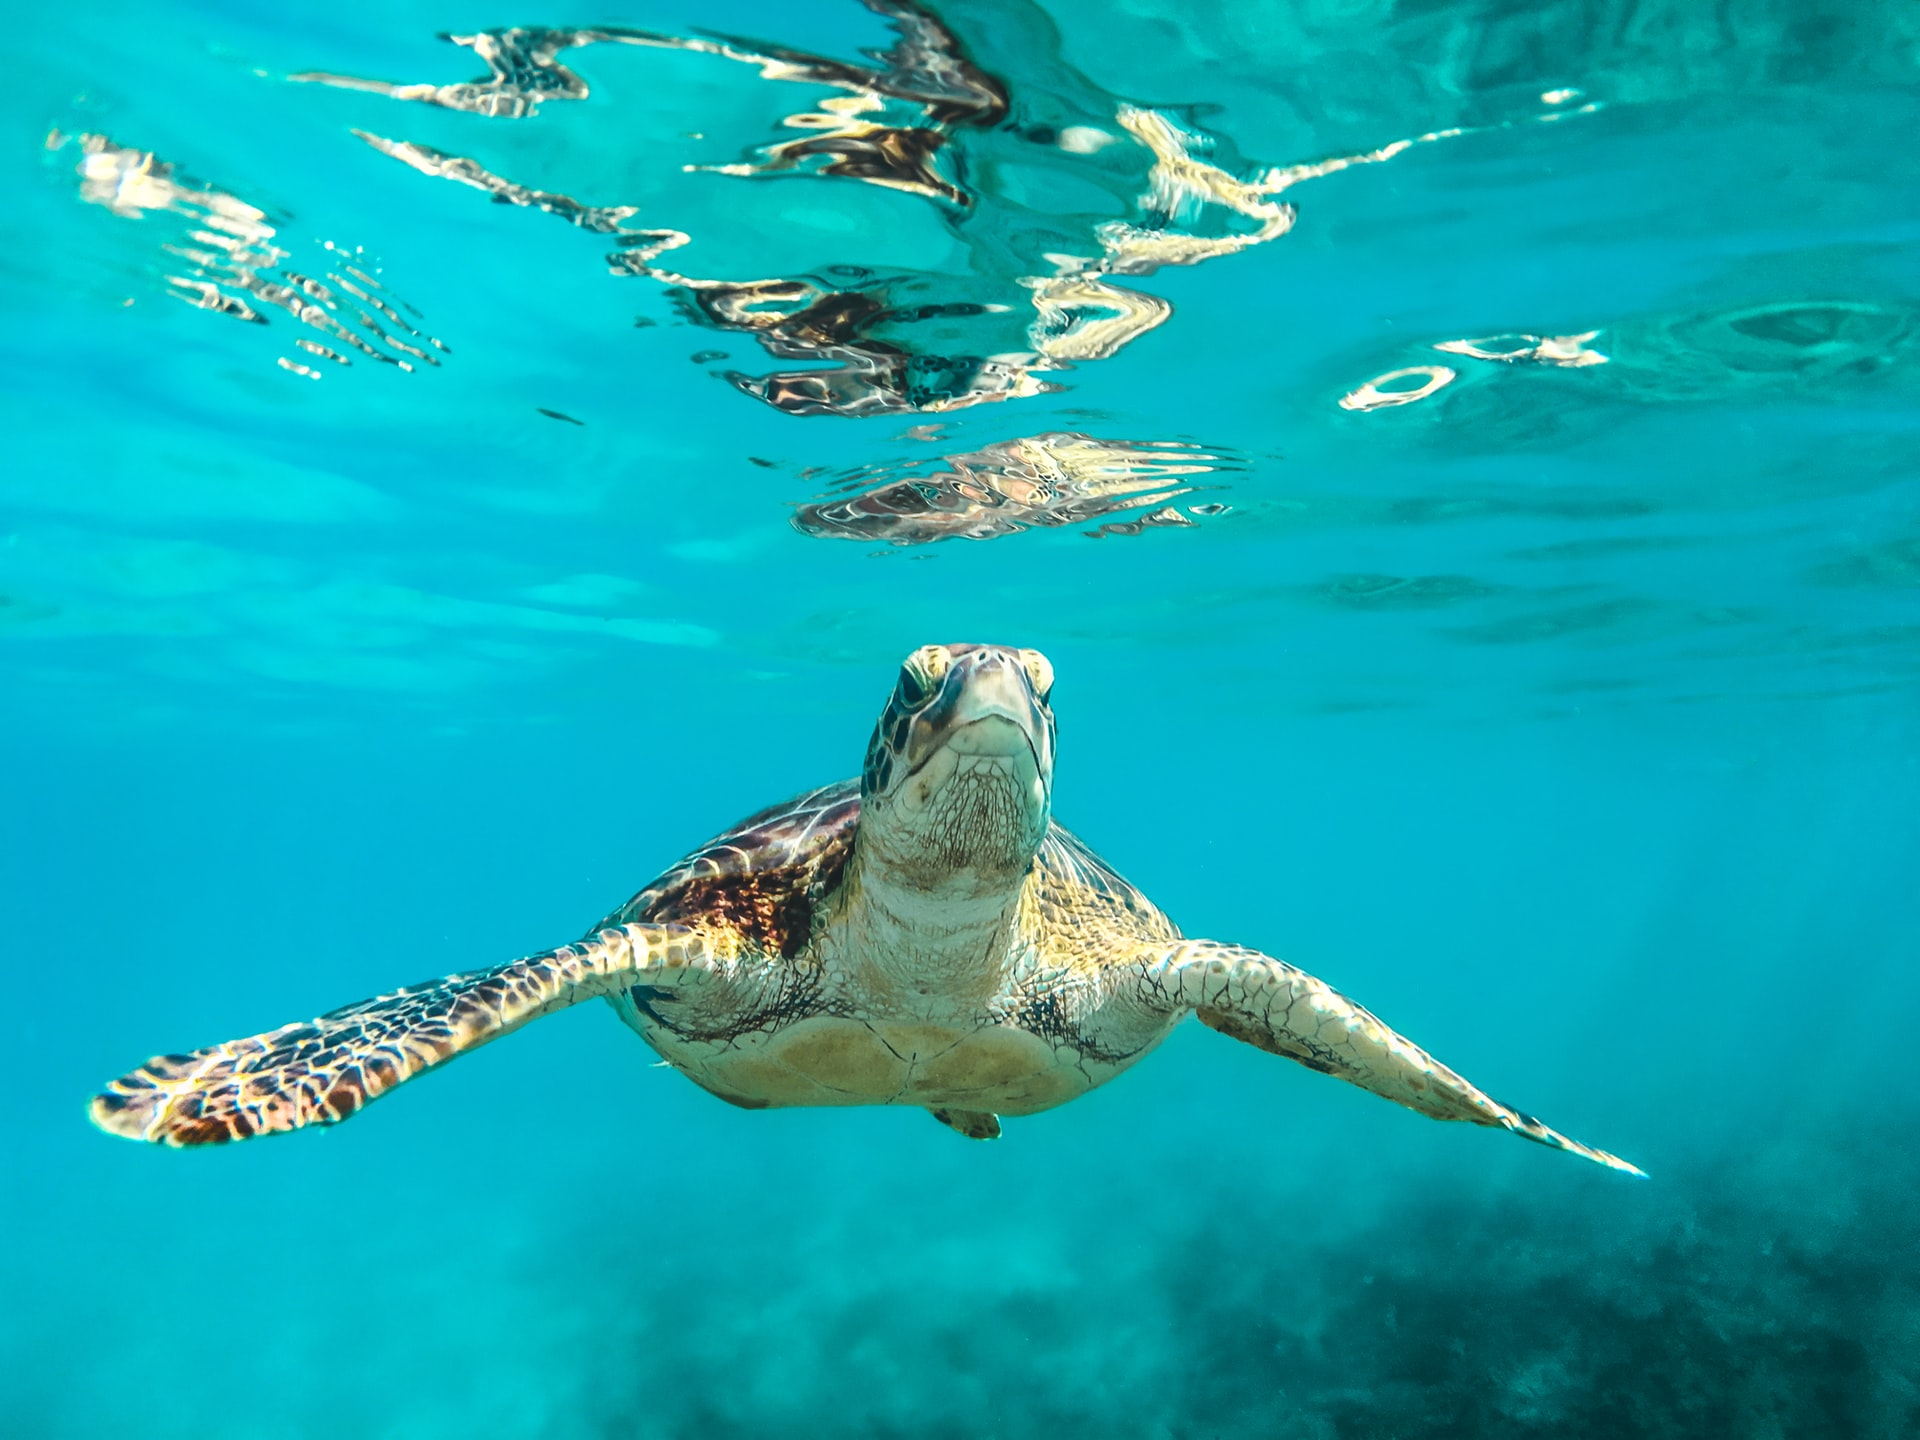 A turtle swimming in the Caribbean sea